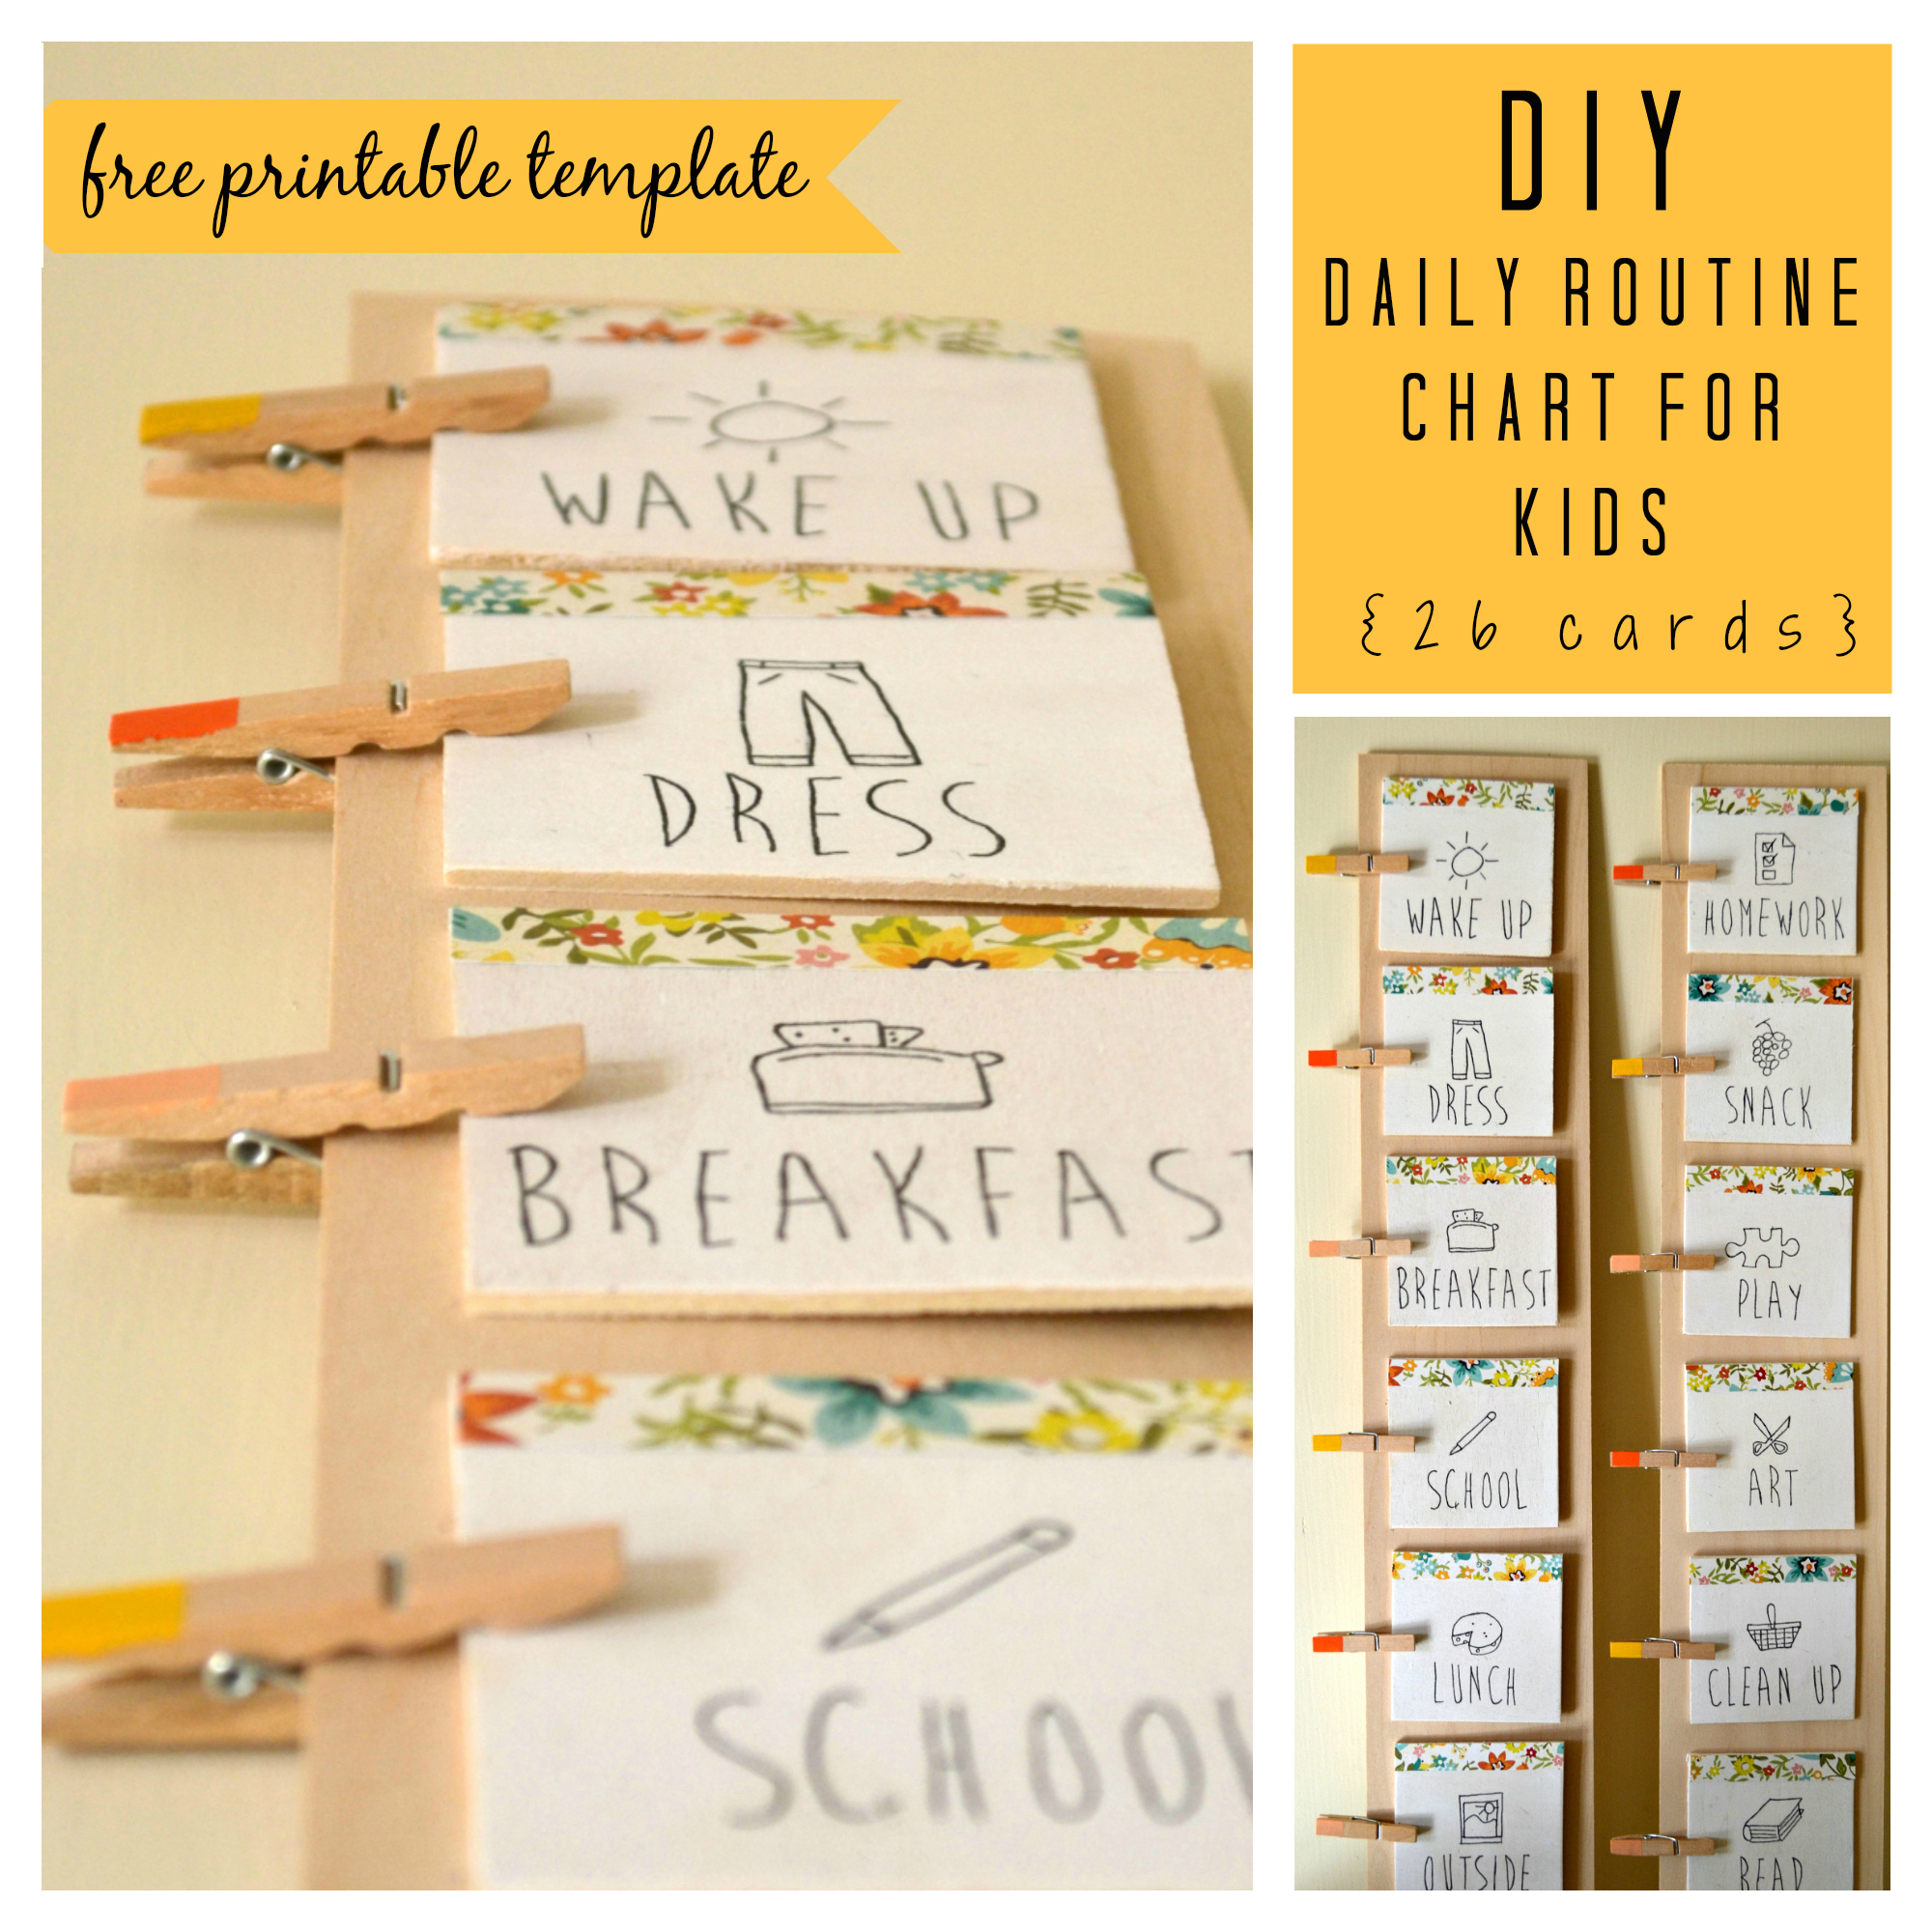 Diy Daily Routine Chart For Kids